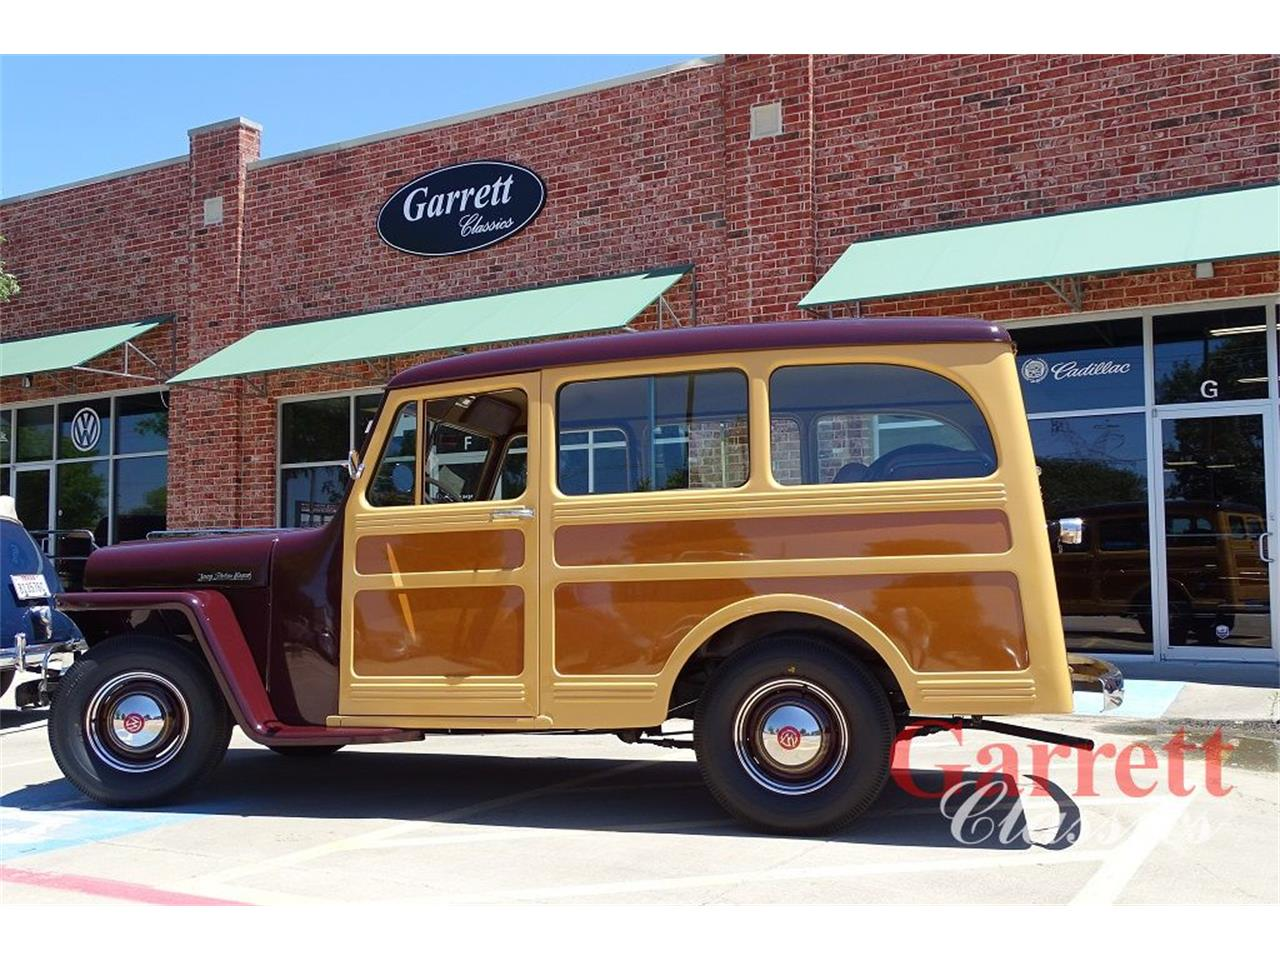 for sale 1947 willys-overland wagon in lewisville, texas cars - lewisville, tx at geebo